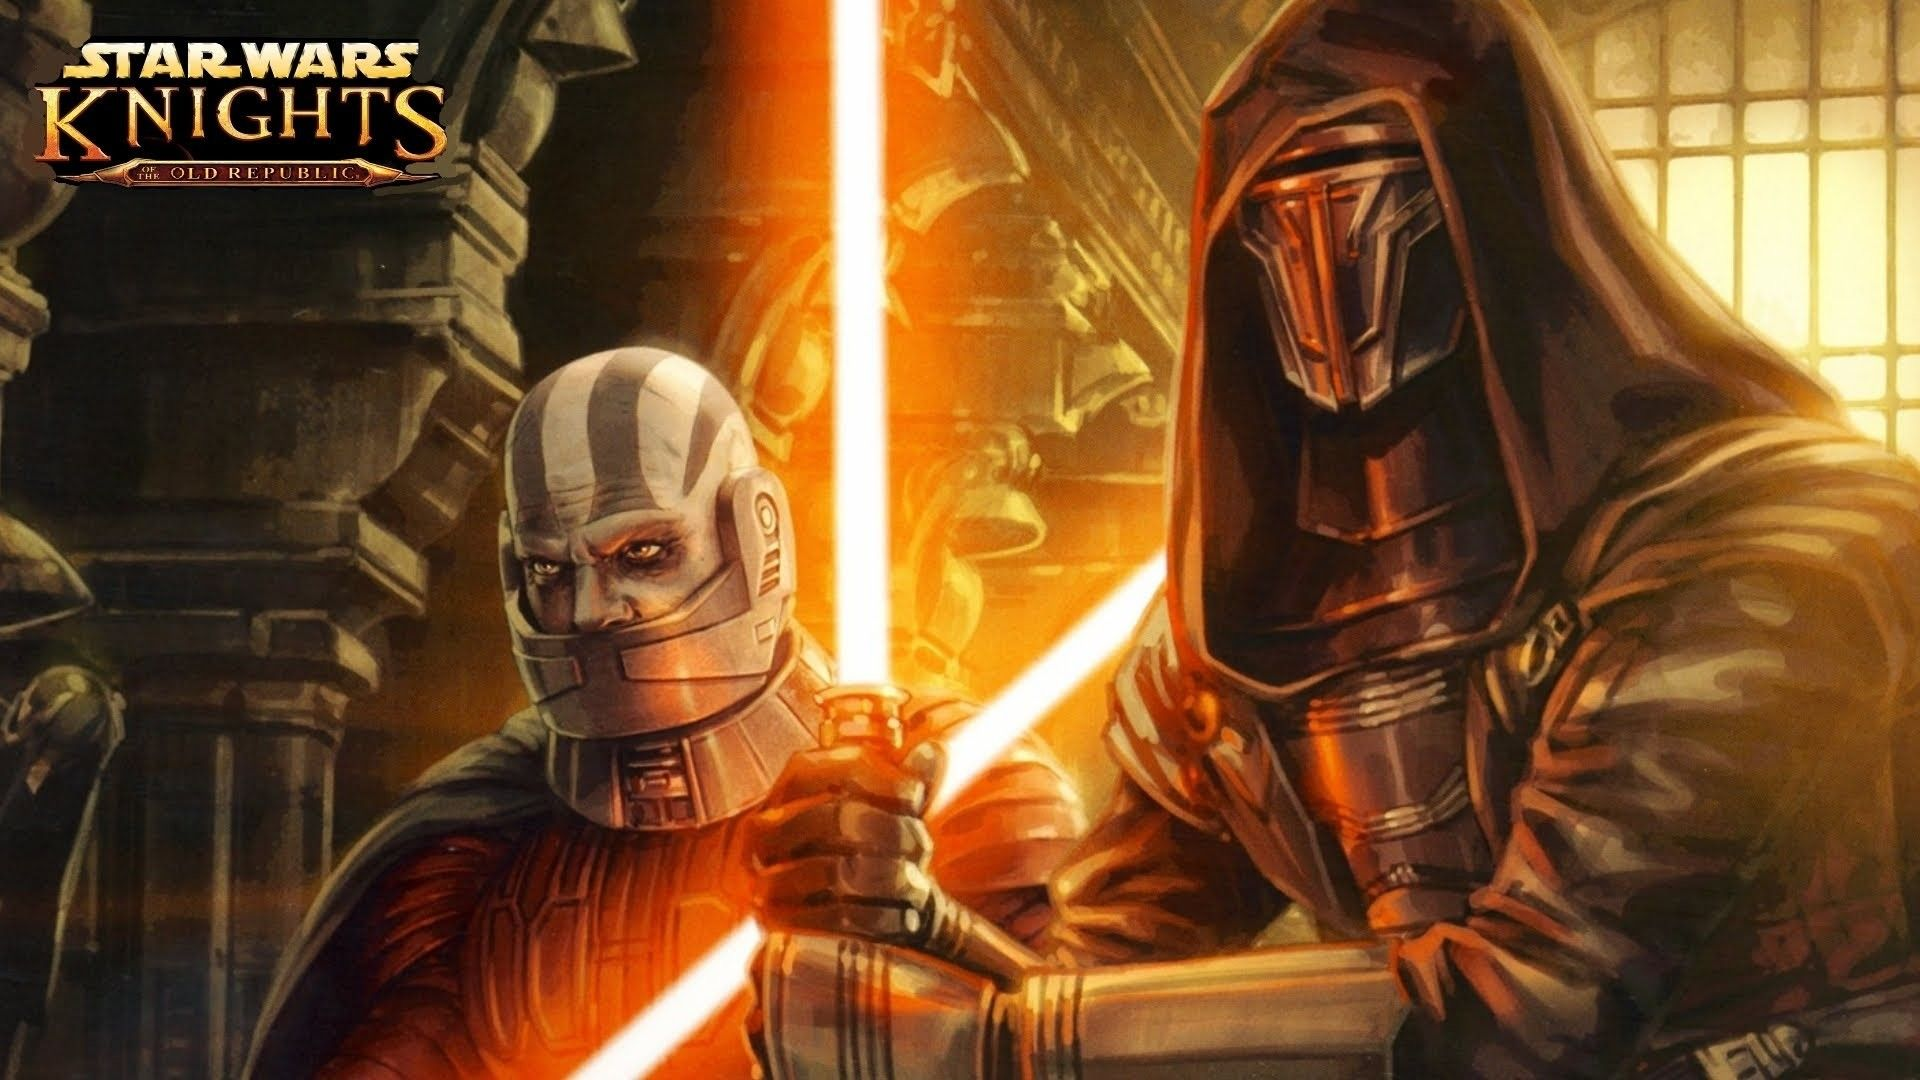 Knights Of The Old Republic Wallpapers Top Free Knights Of The Old Republic Backgrounds Wallpaperaccess